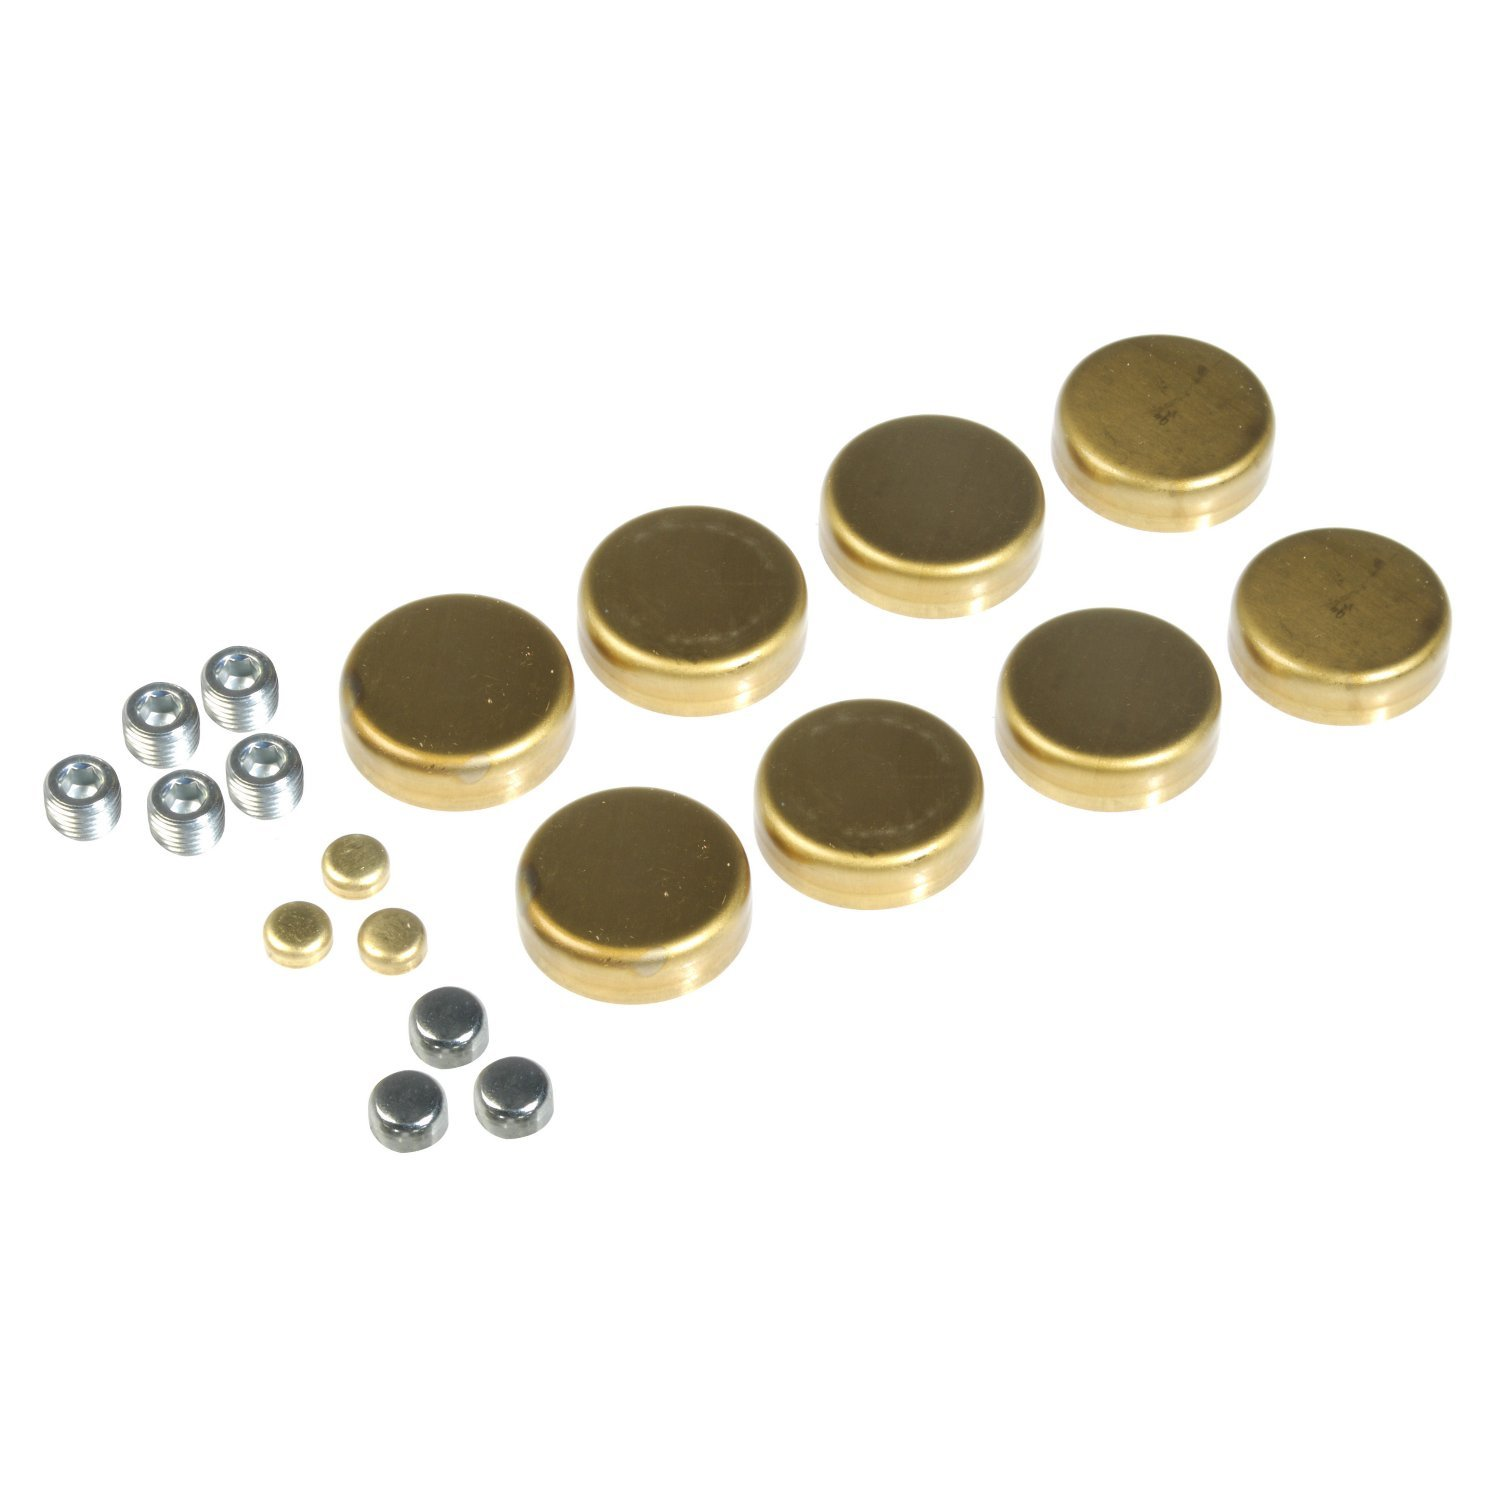 Dorman 567-017 Expansion Plug Kit